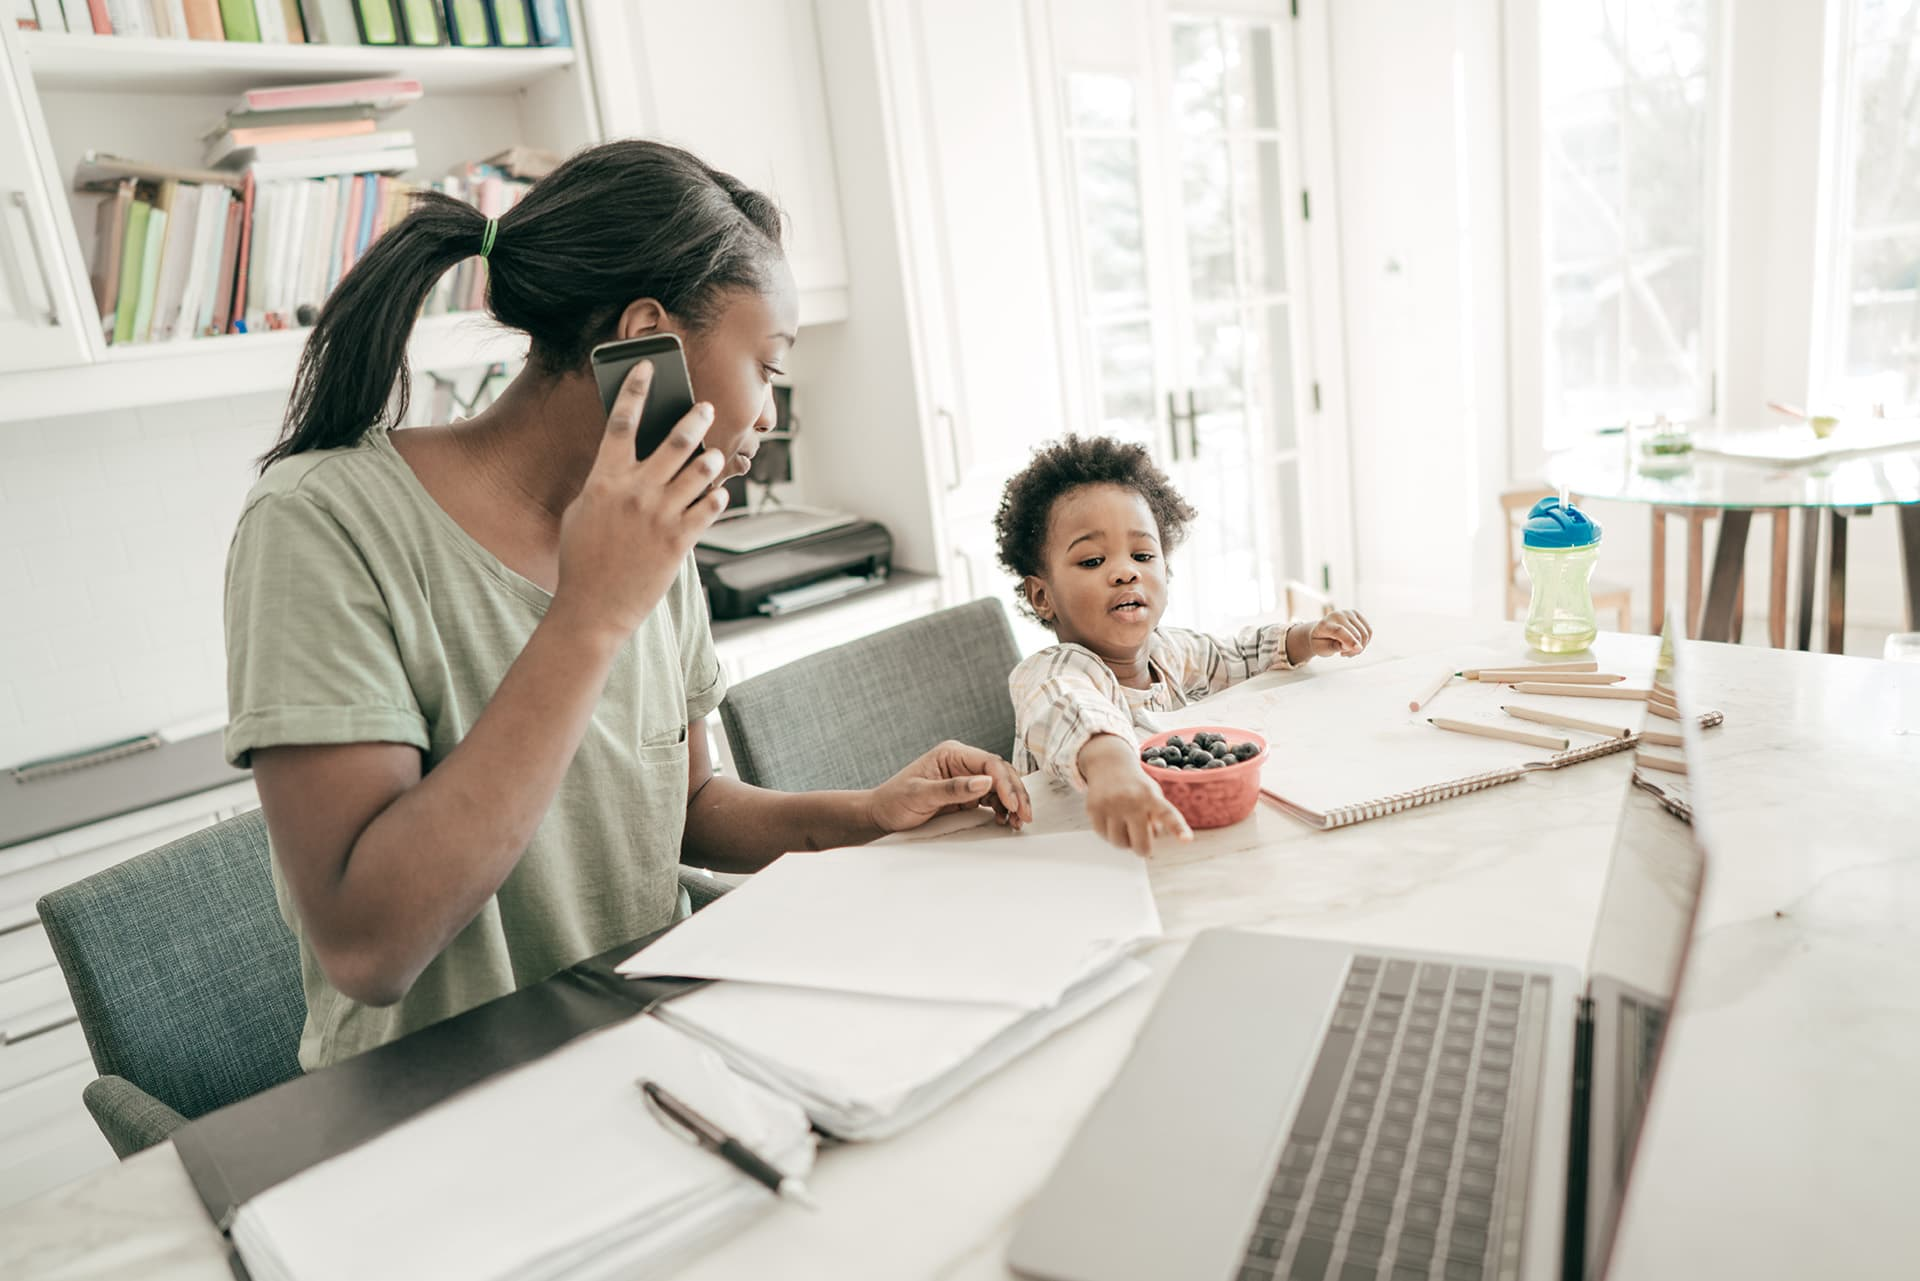 Woman sitting next to her child, talking on the phone, with home business insurance documents in front of her